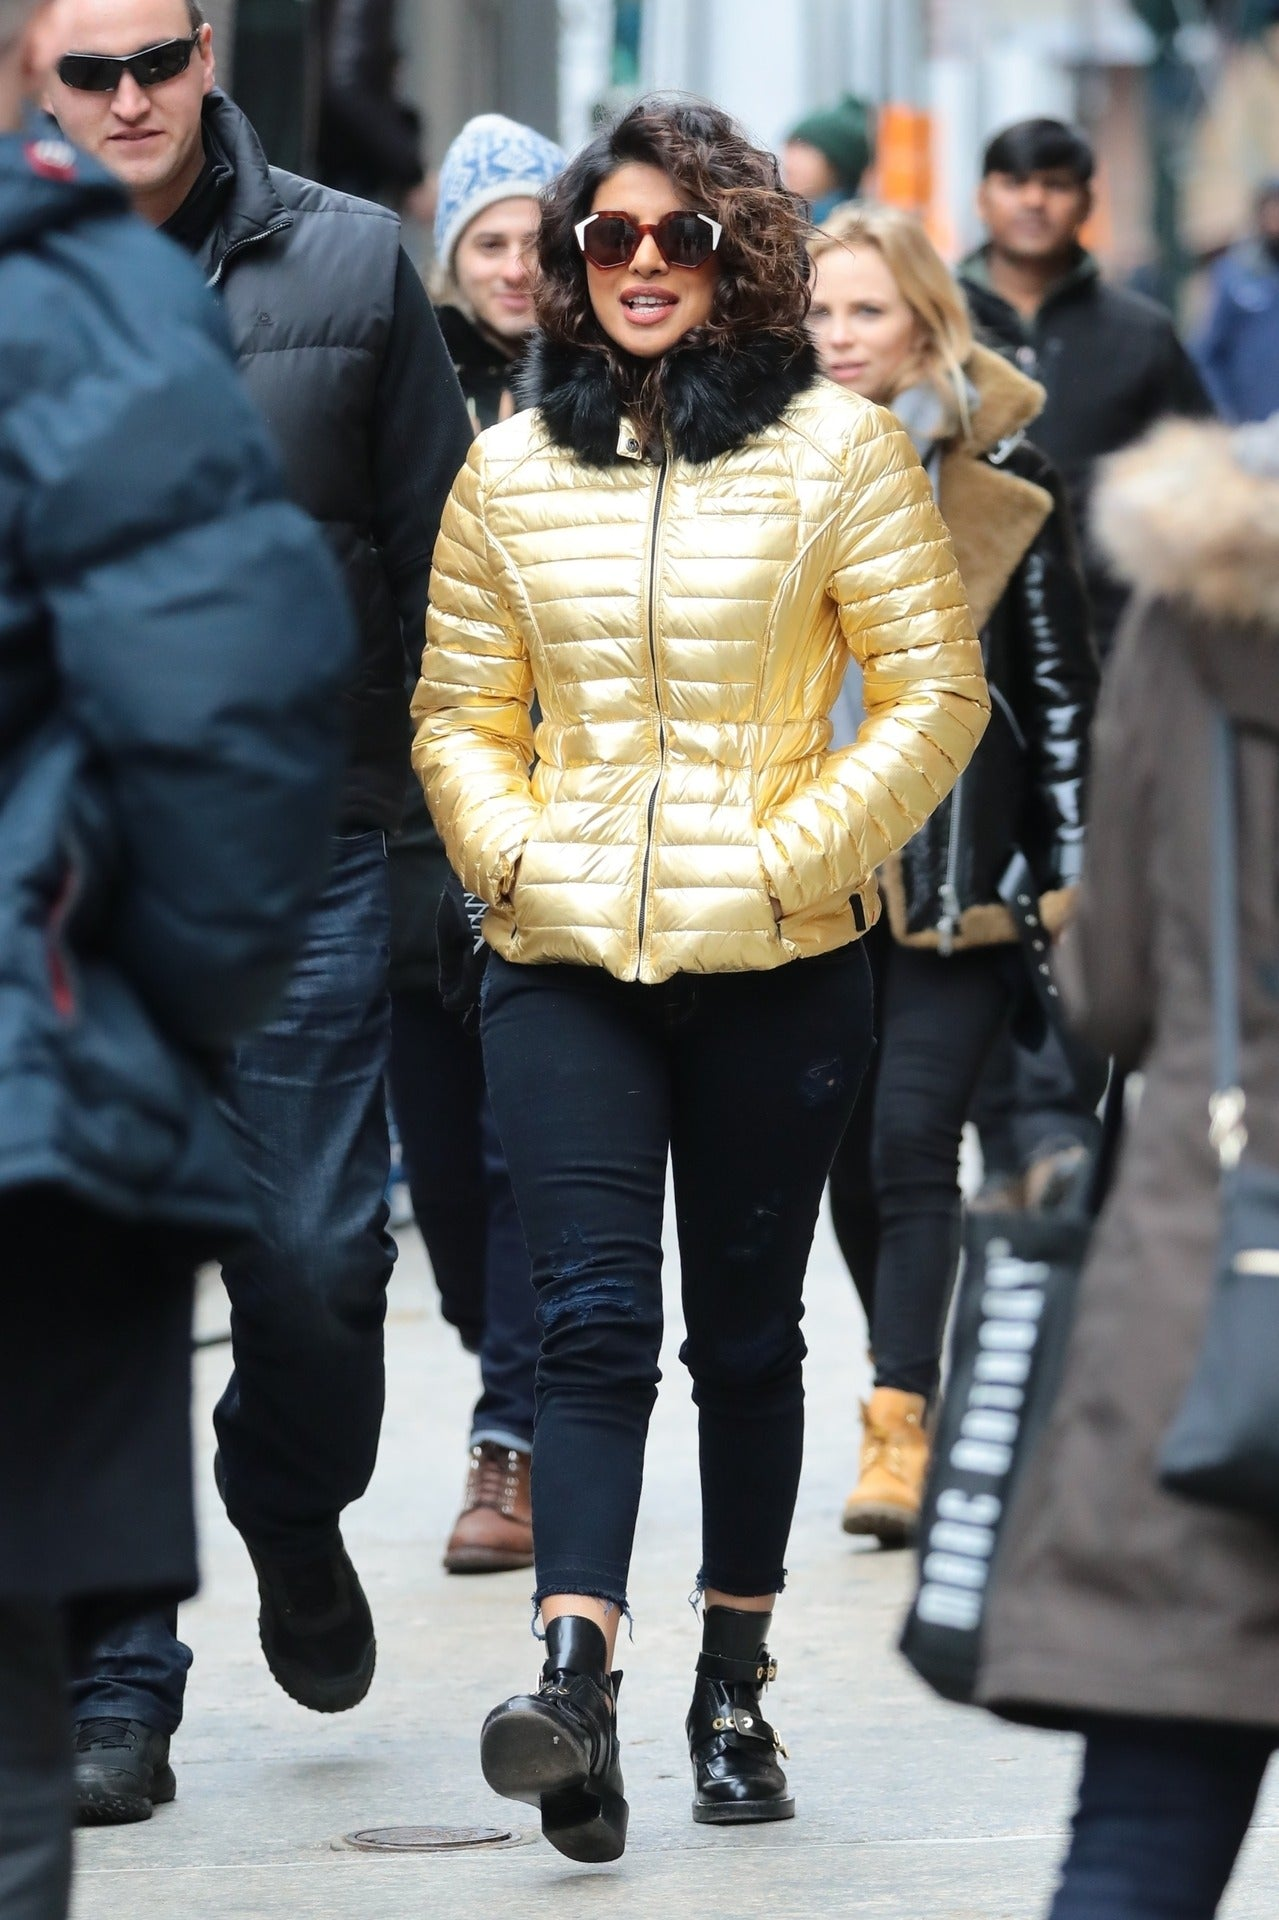 Priyanka Chopra in golden Jacket